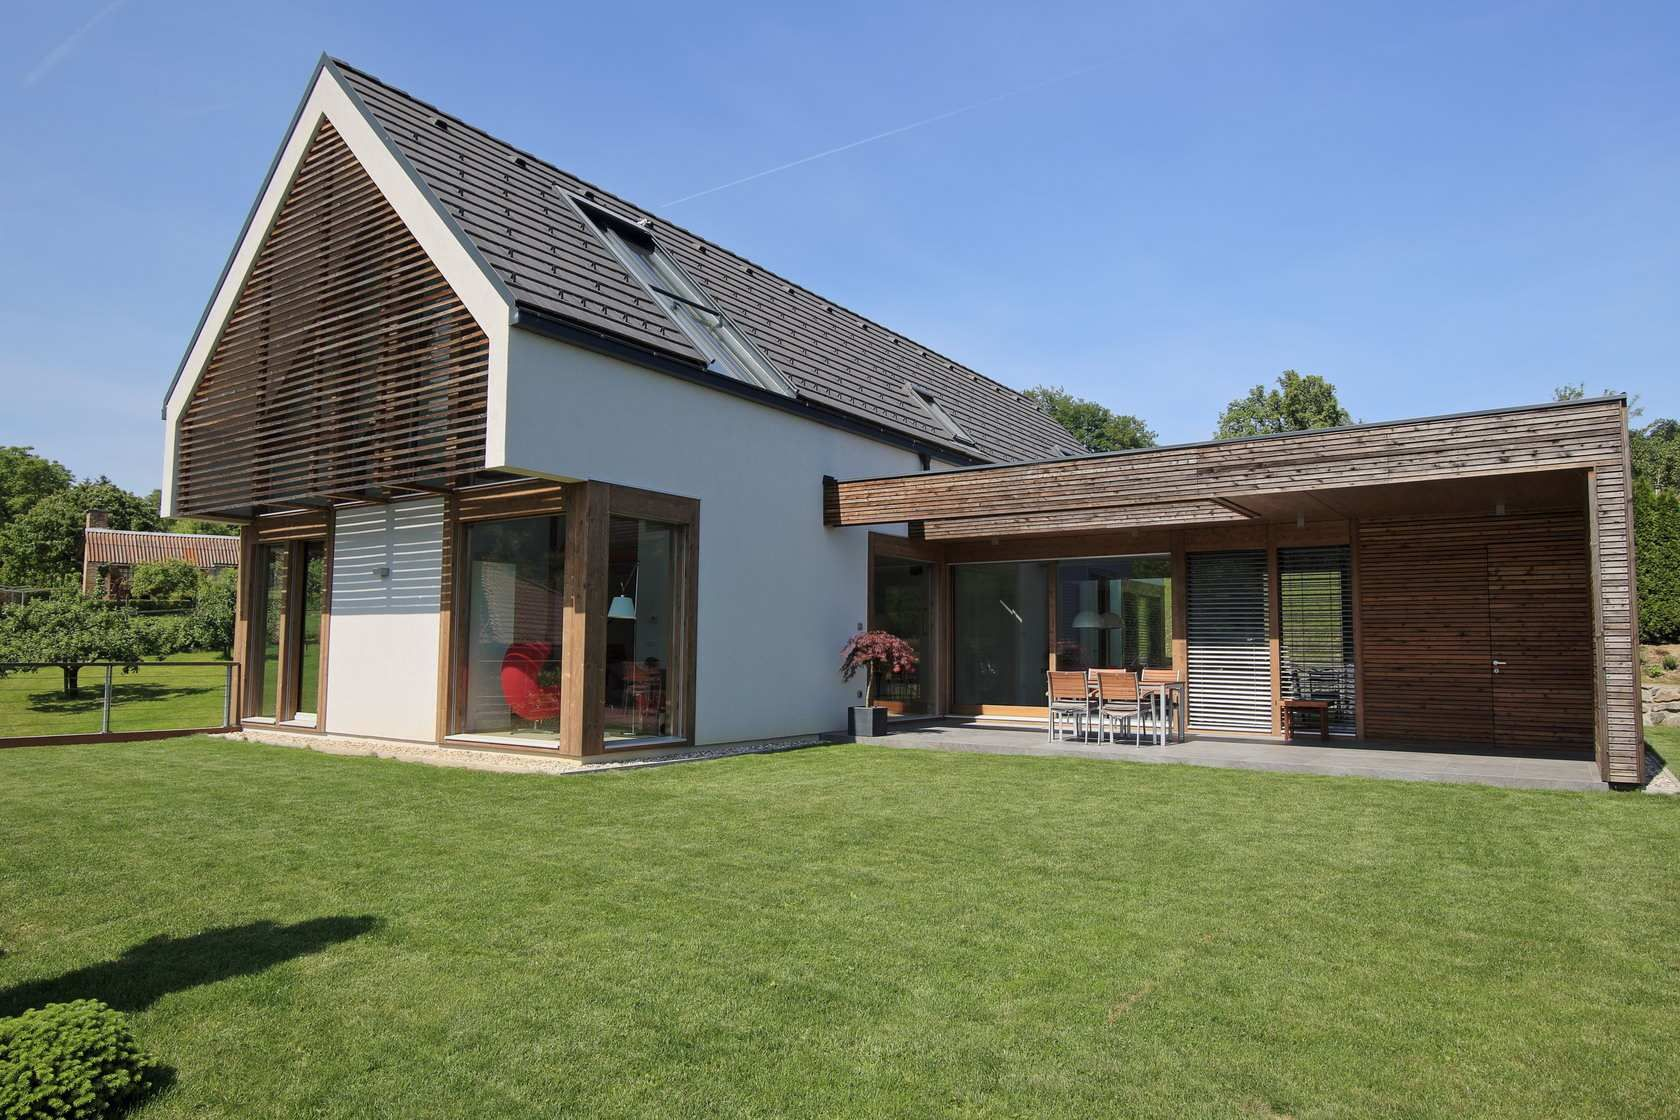 A Combination Of A Flat And Gable Roof Modern Glass Houses Kager Modern Glass House Roof Styles Gable Roof Design